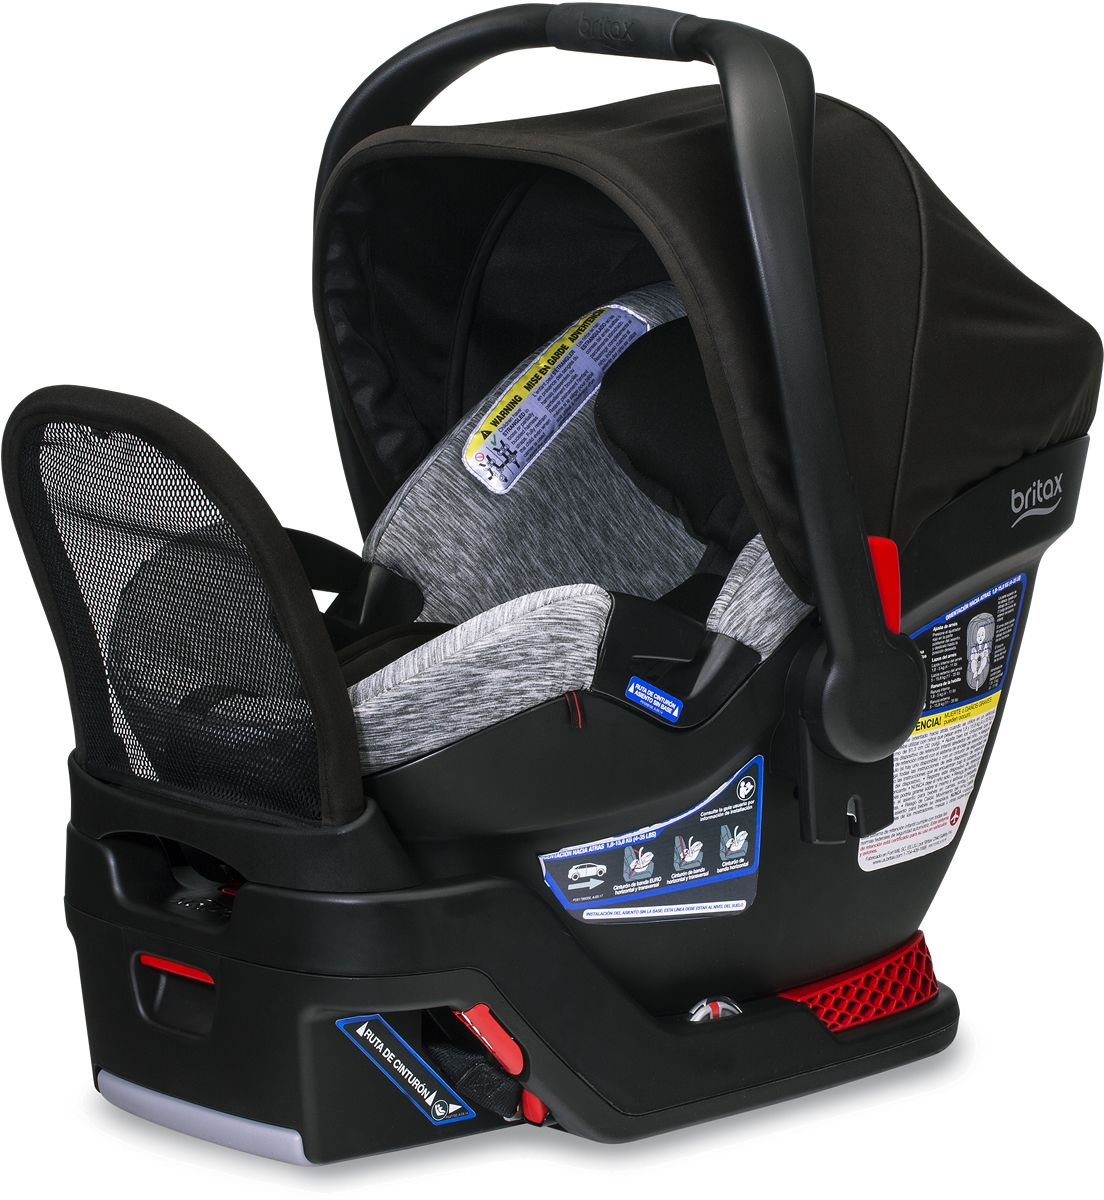 Britax Endeavours Infant Car Seat Spark Car seats, Britax